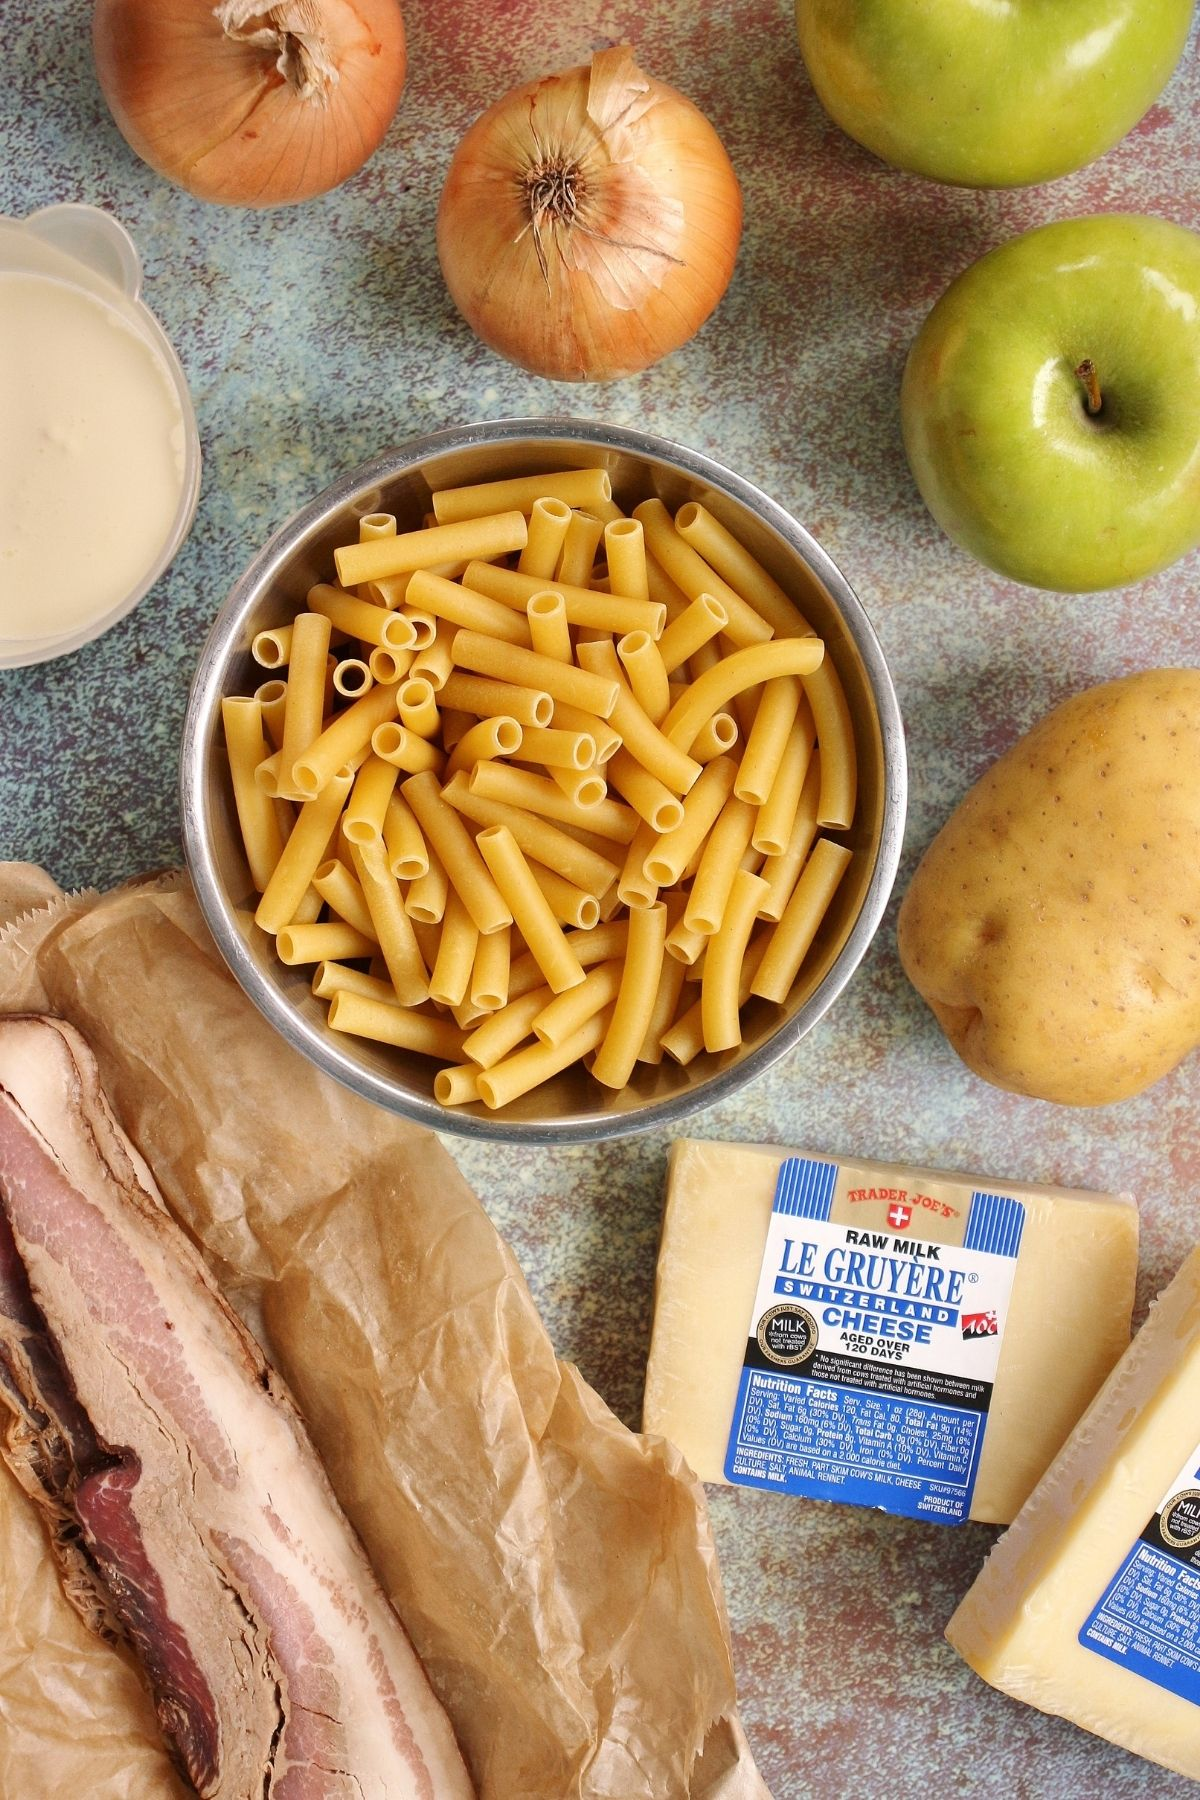 Ingredients for Alpine macaroni including ziti, cheese, potato, onions, apples, and bacon.